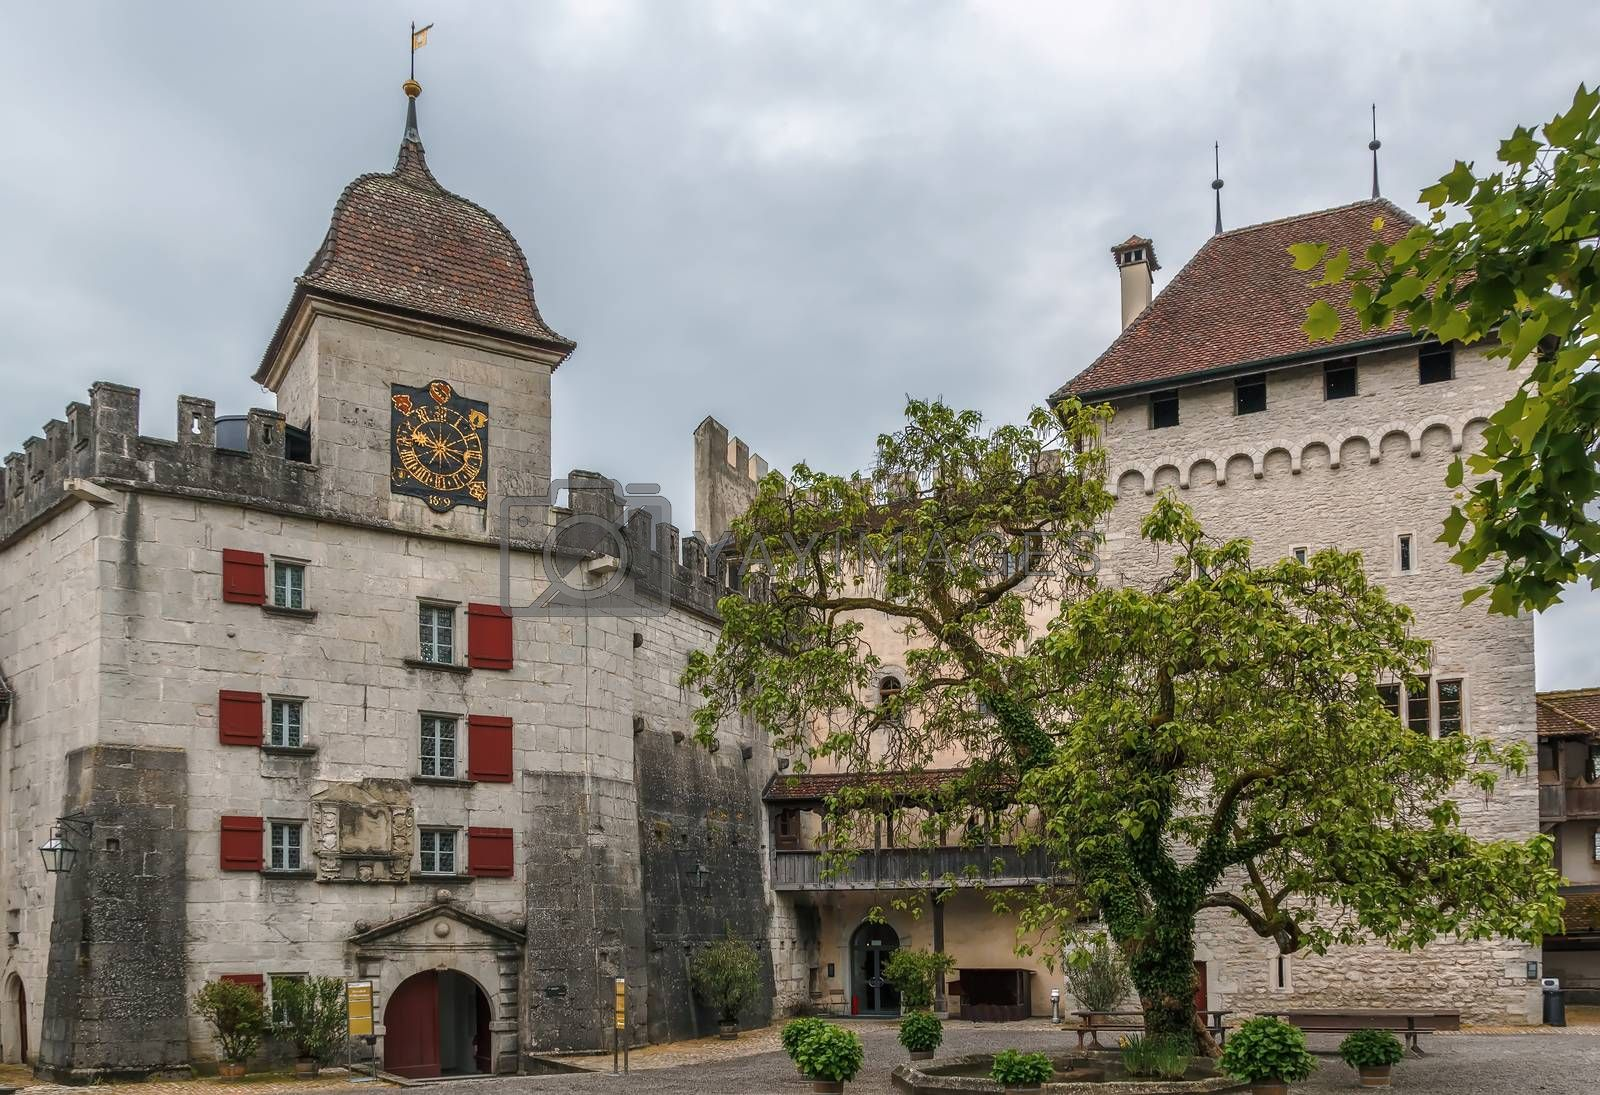 Lenzburg castle, Switzerland by borisb17